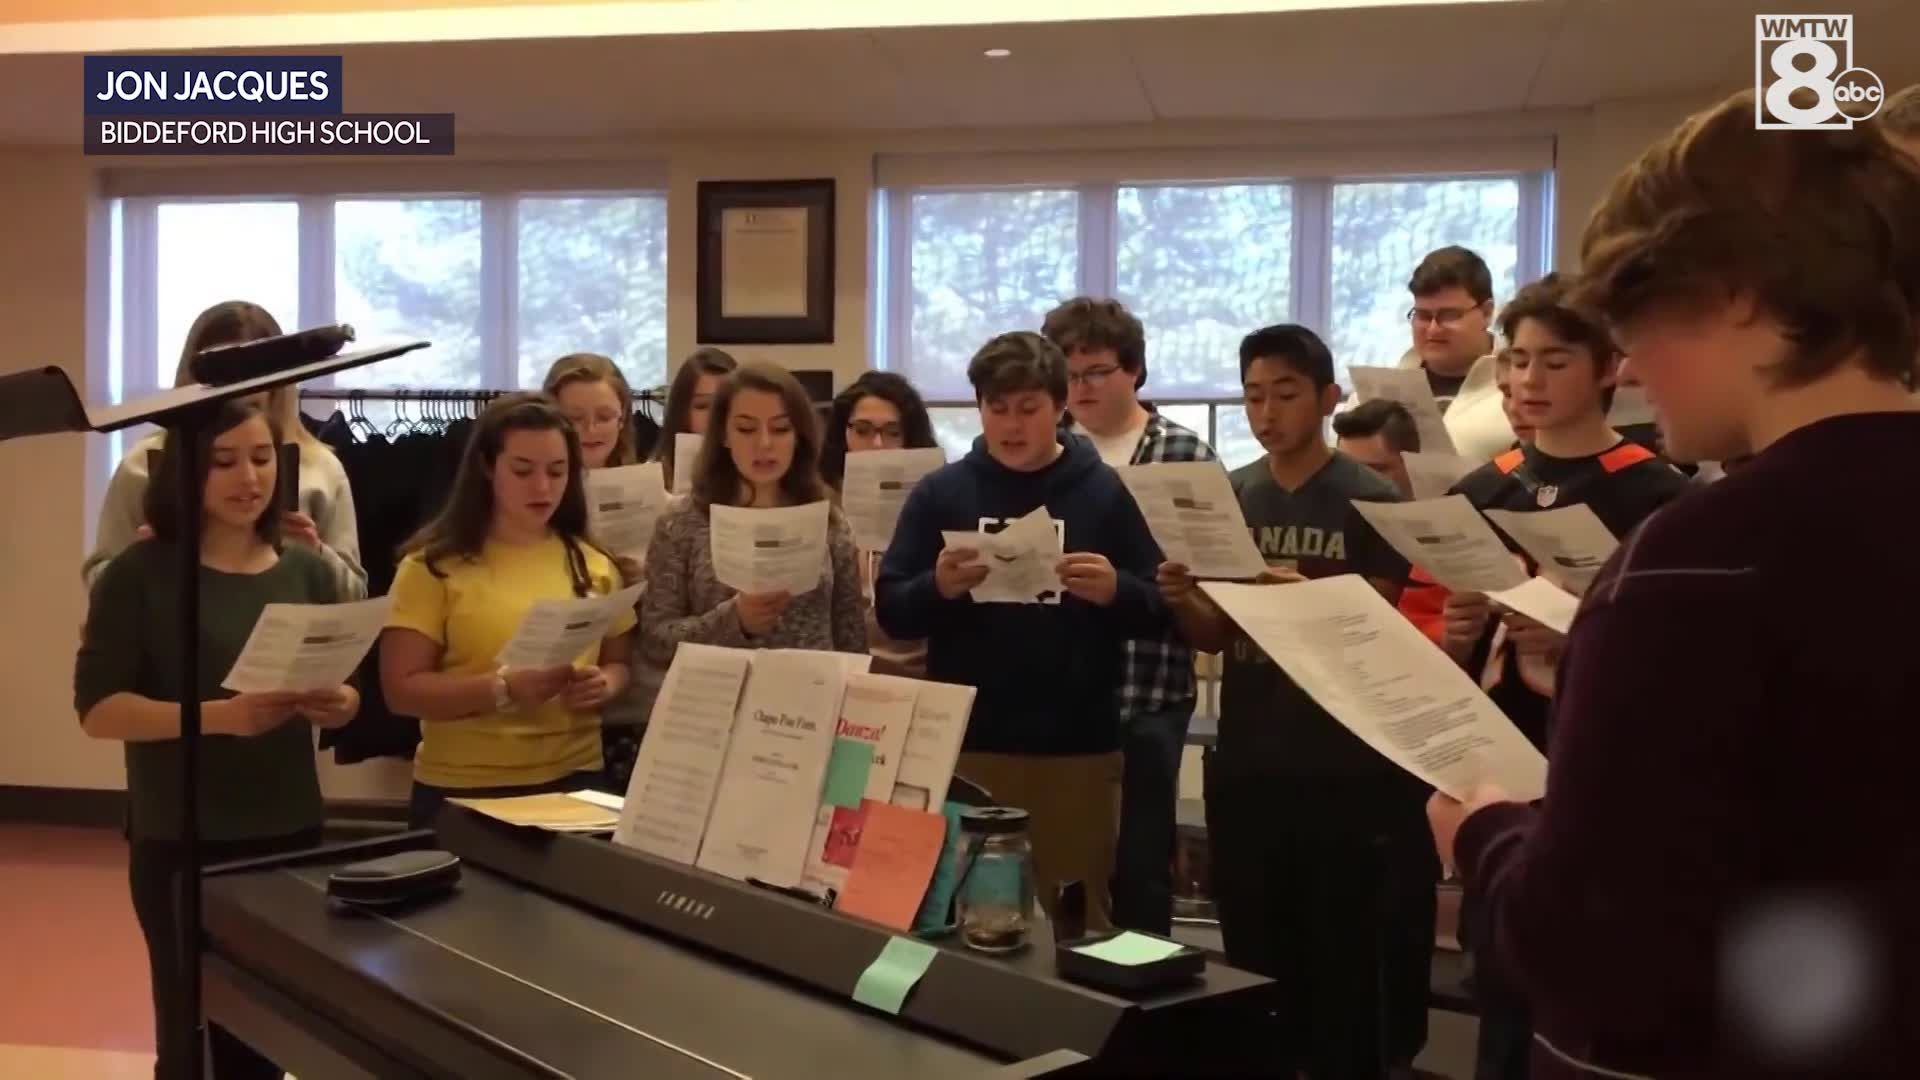 Biddeford High School Students Celebrate Pi Day With Song